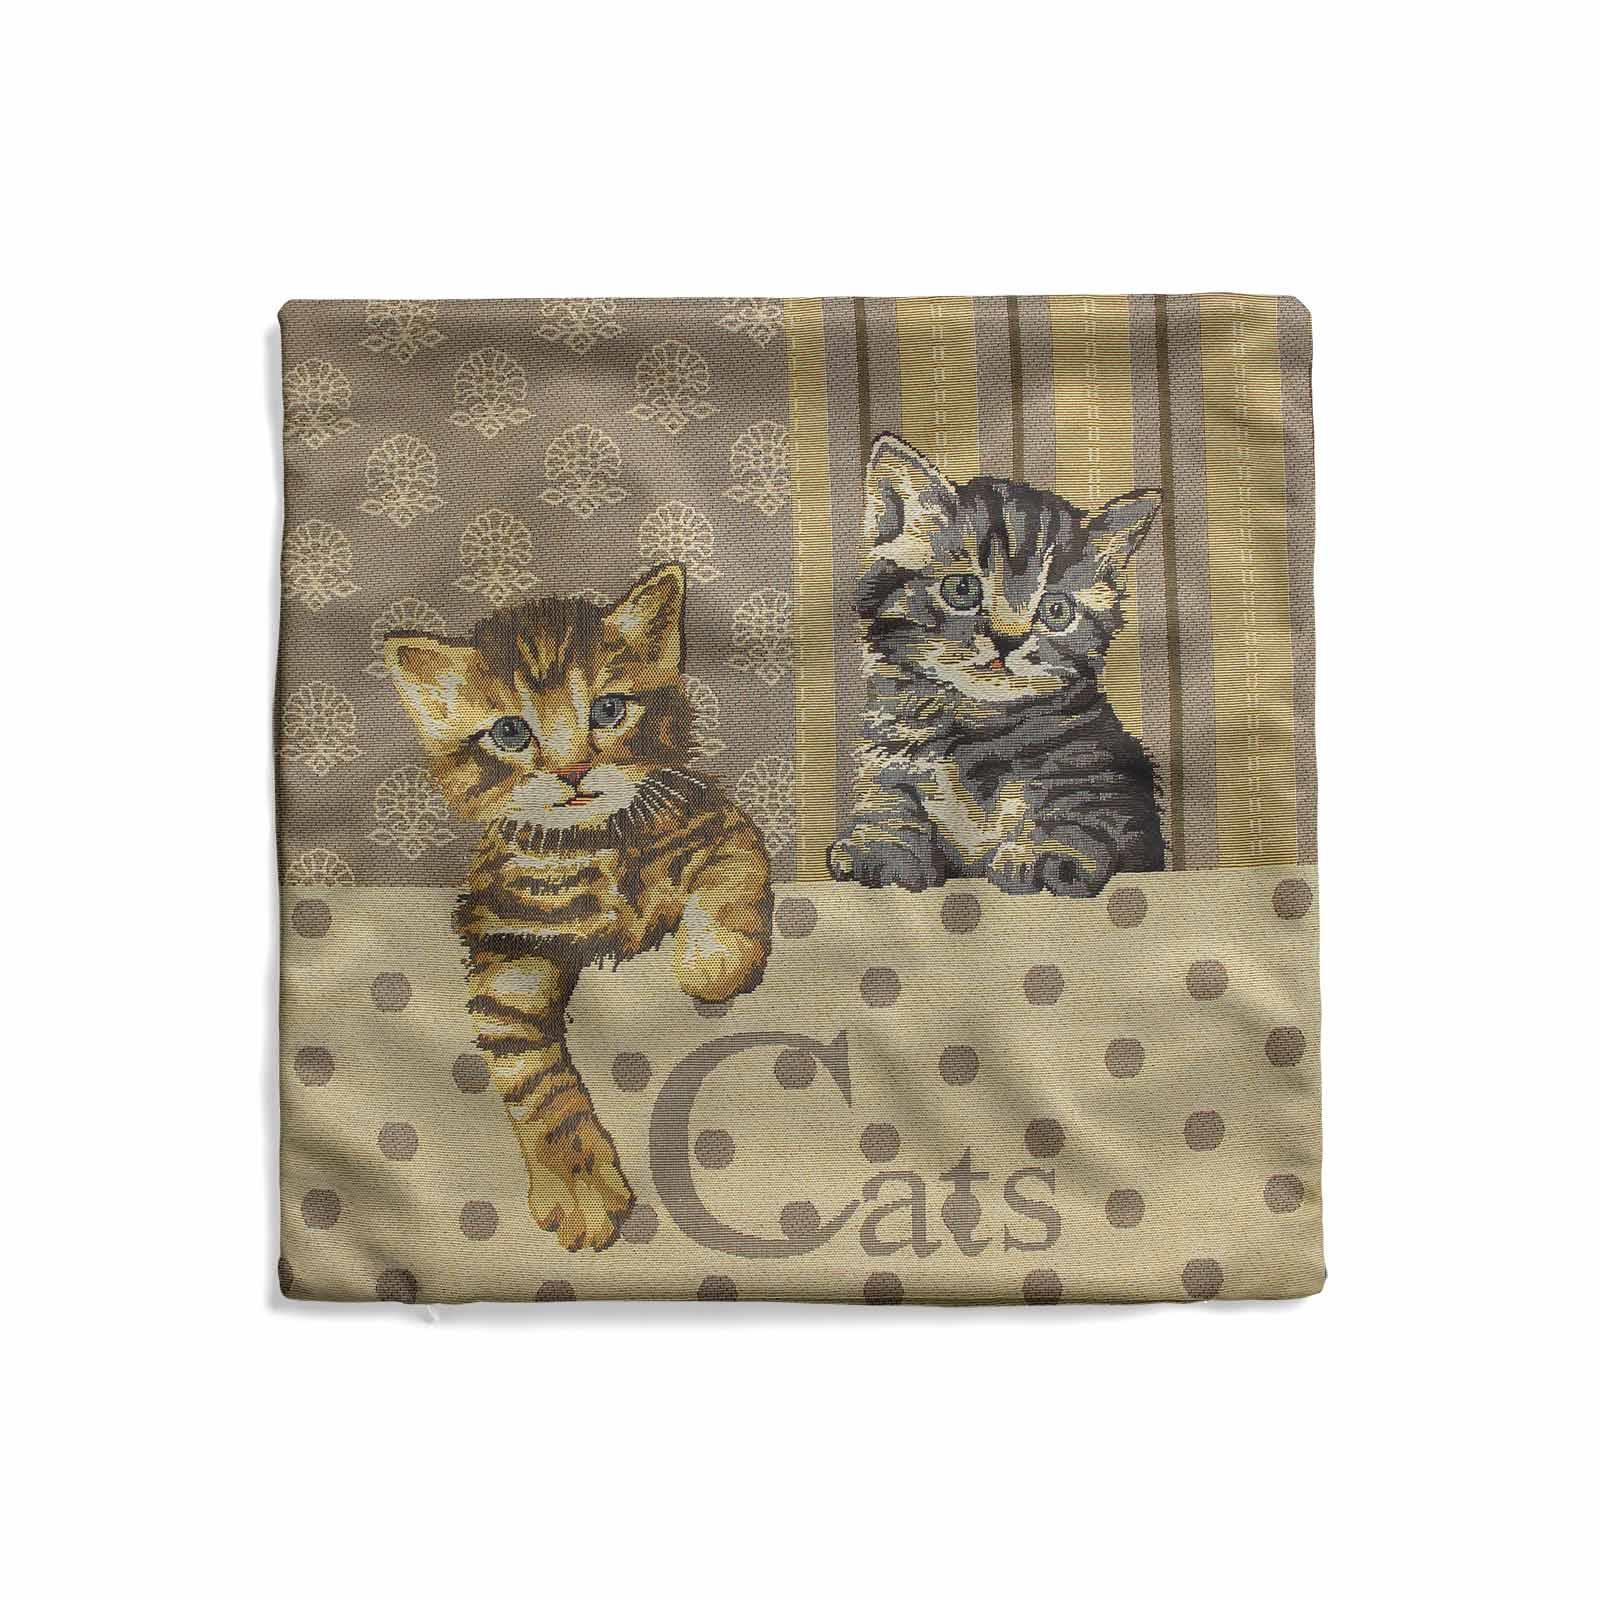 Tapestry-Cushion-Covers-Vintage-Pillow-Cover-Collection-18-034-45cm-Filled-Cushions thumbnail 18